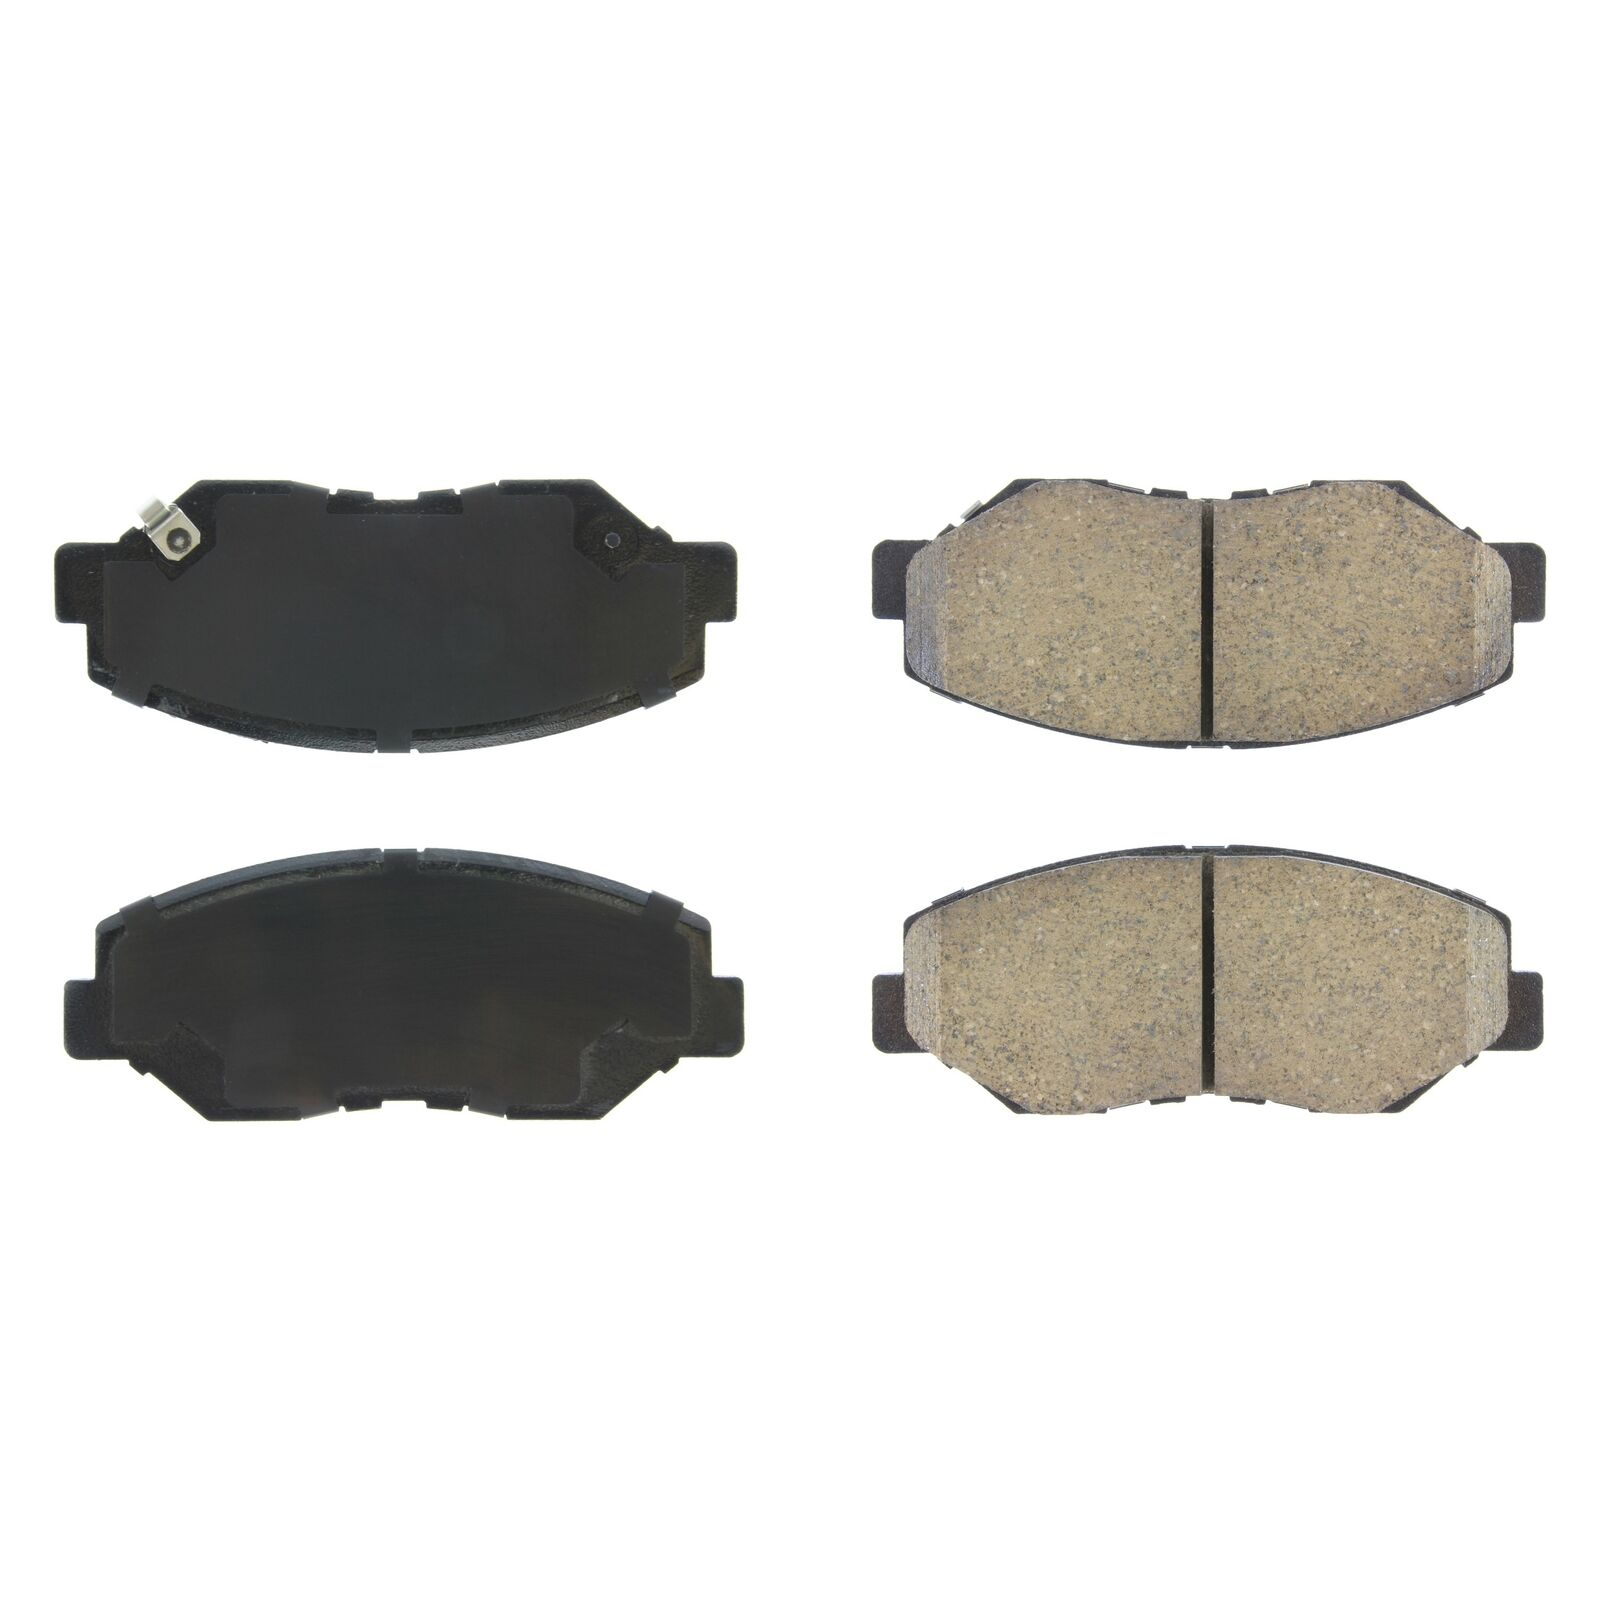 StopTech 308.09141 Street Brake Pads; Front with Shims and Hardware